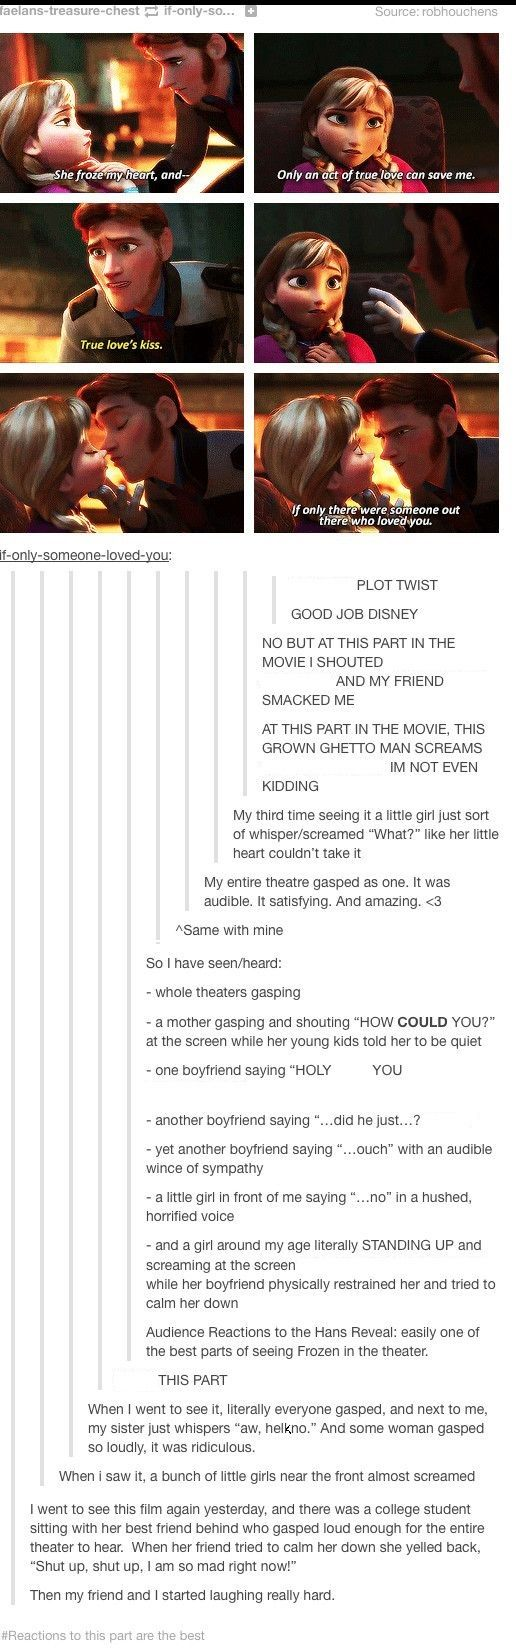 Reactions to Frozen.